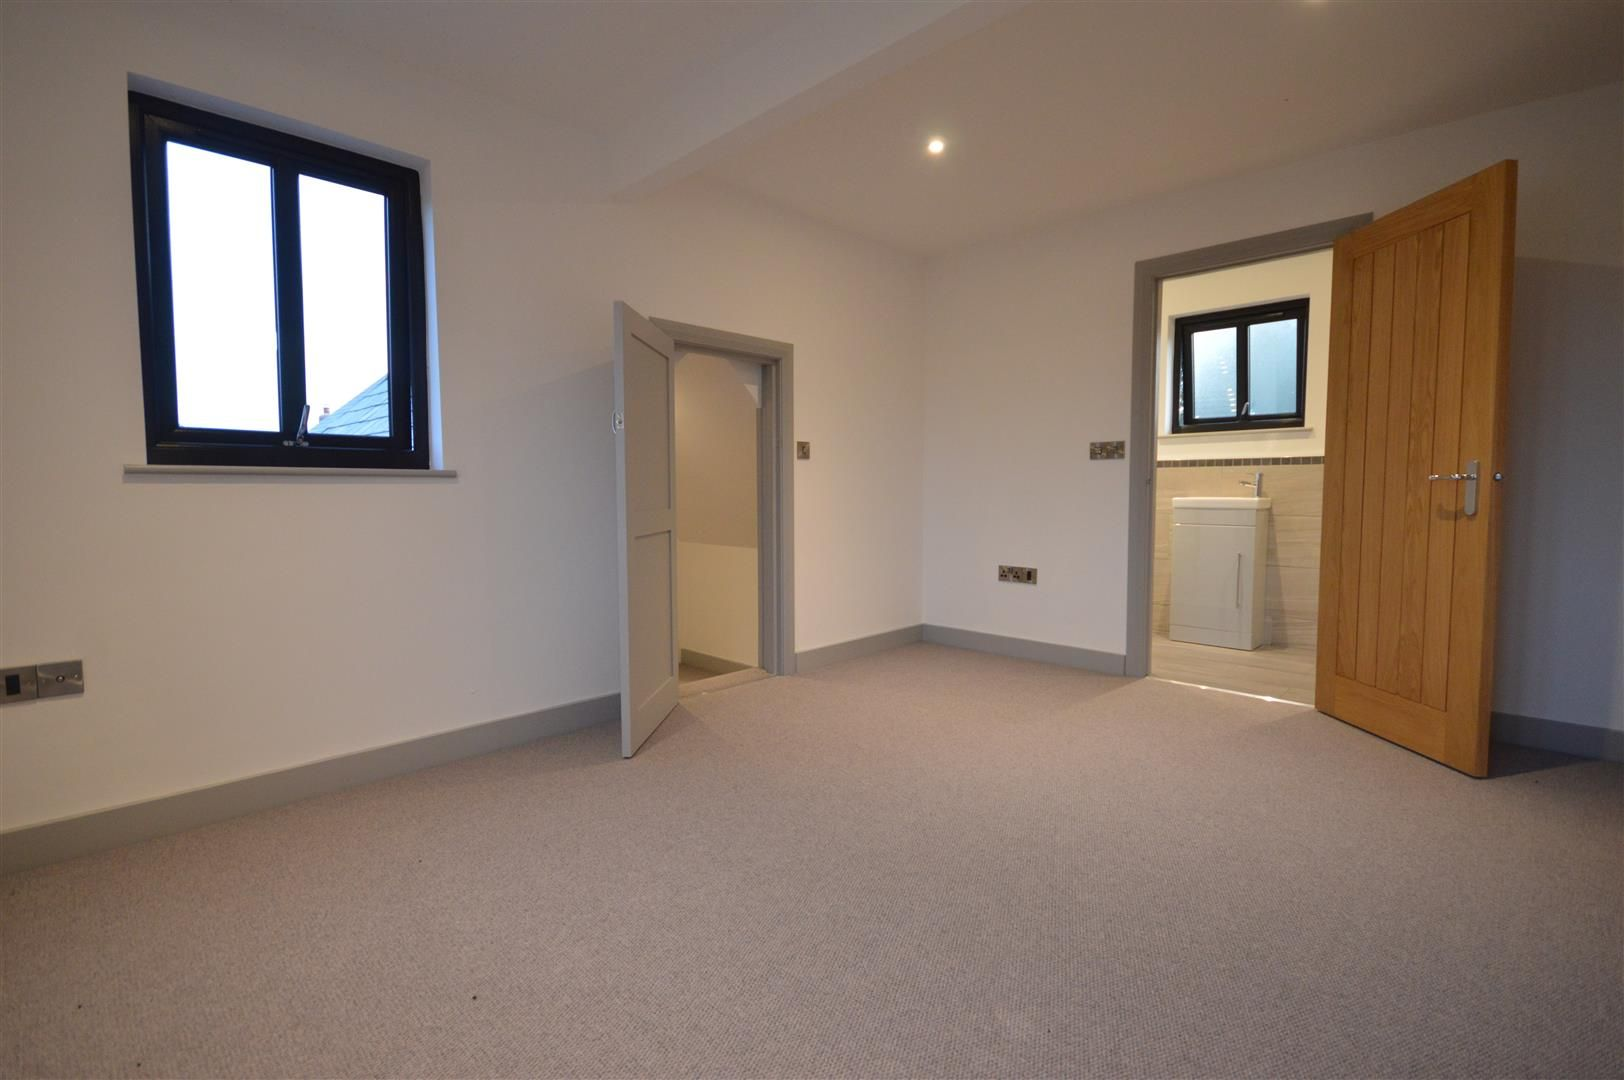 4 bed detached for sale in Brimfield 10